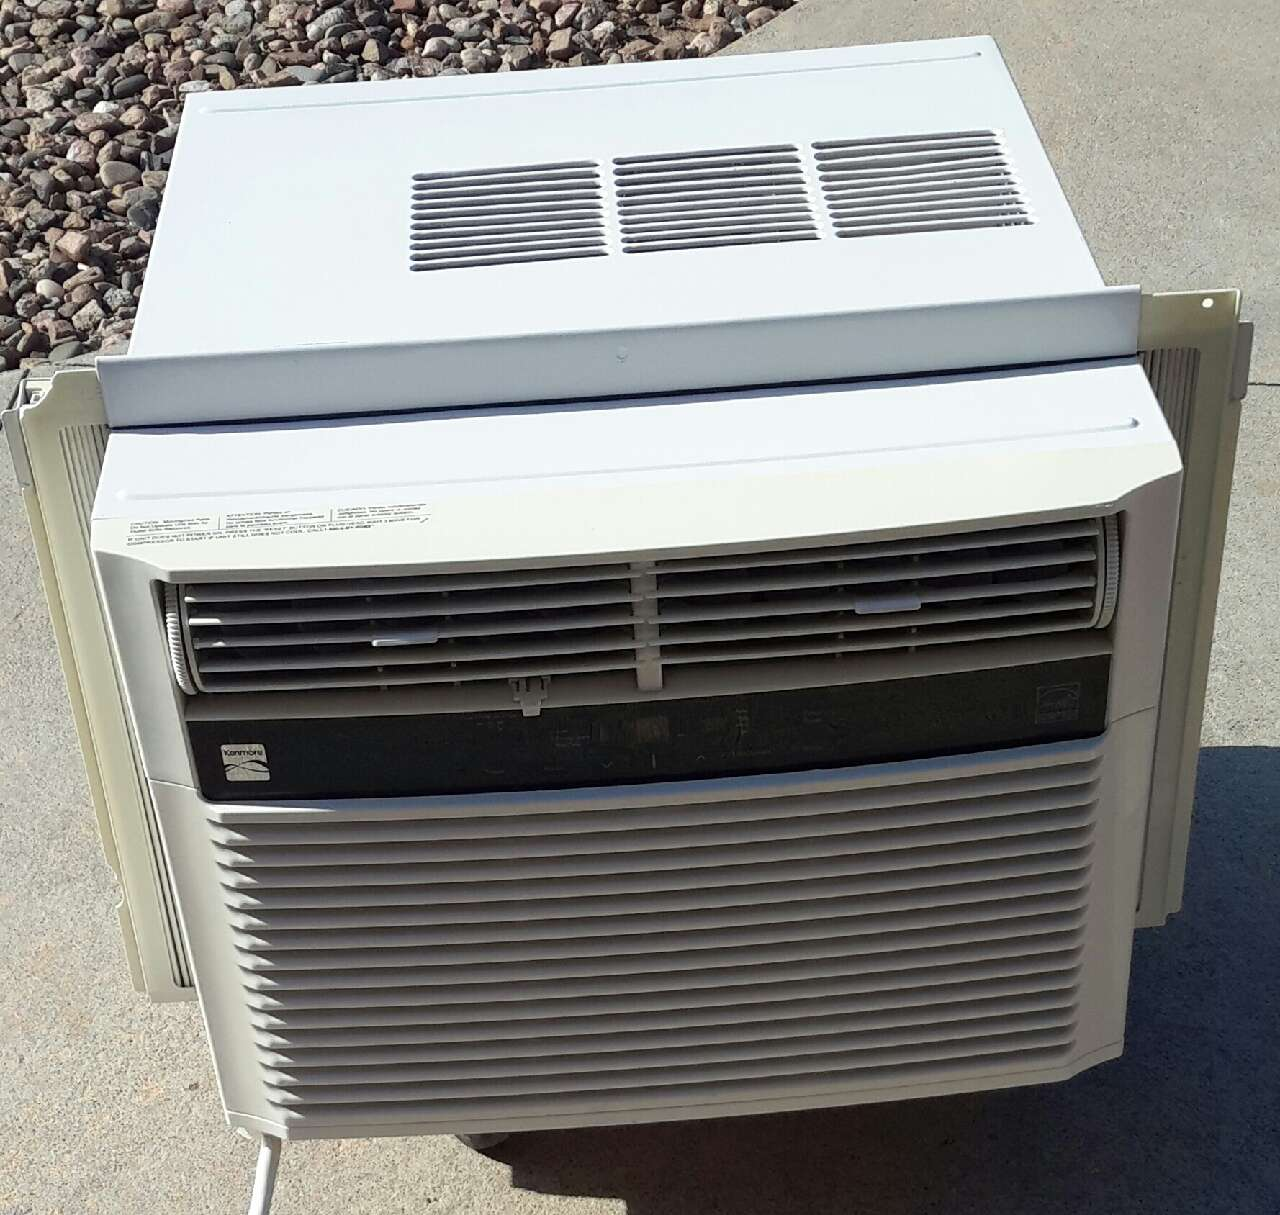 Letgo kenmore 10 000 btu room air condi in sheridan co for 15 inch wide window air conditioner